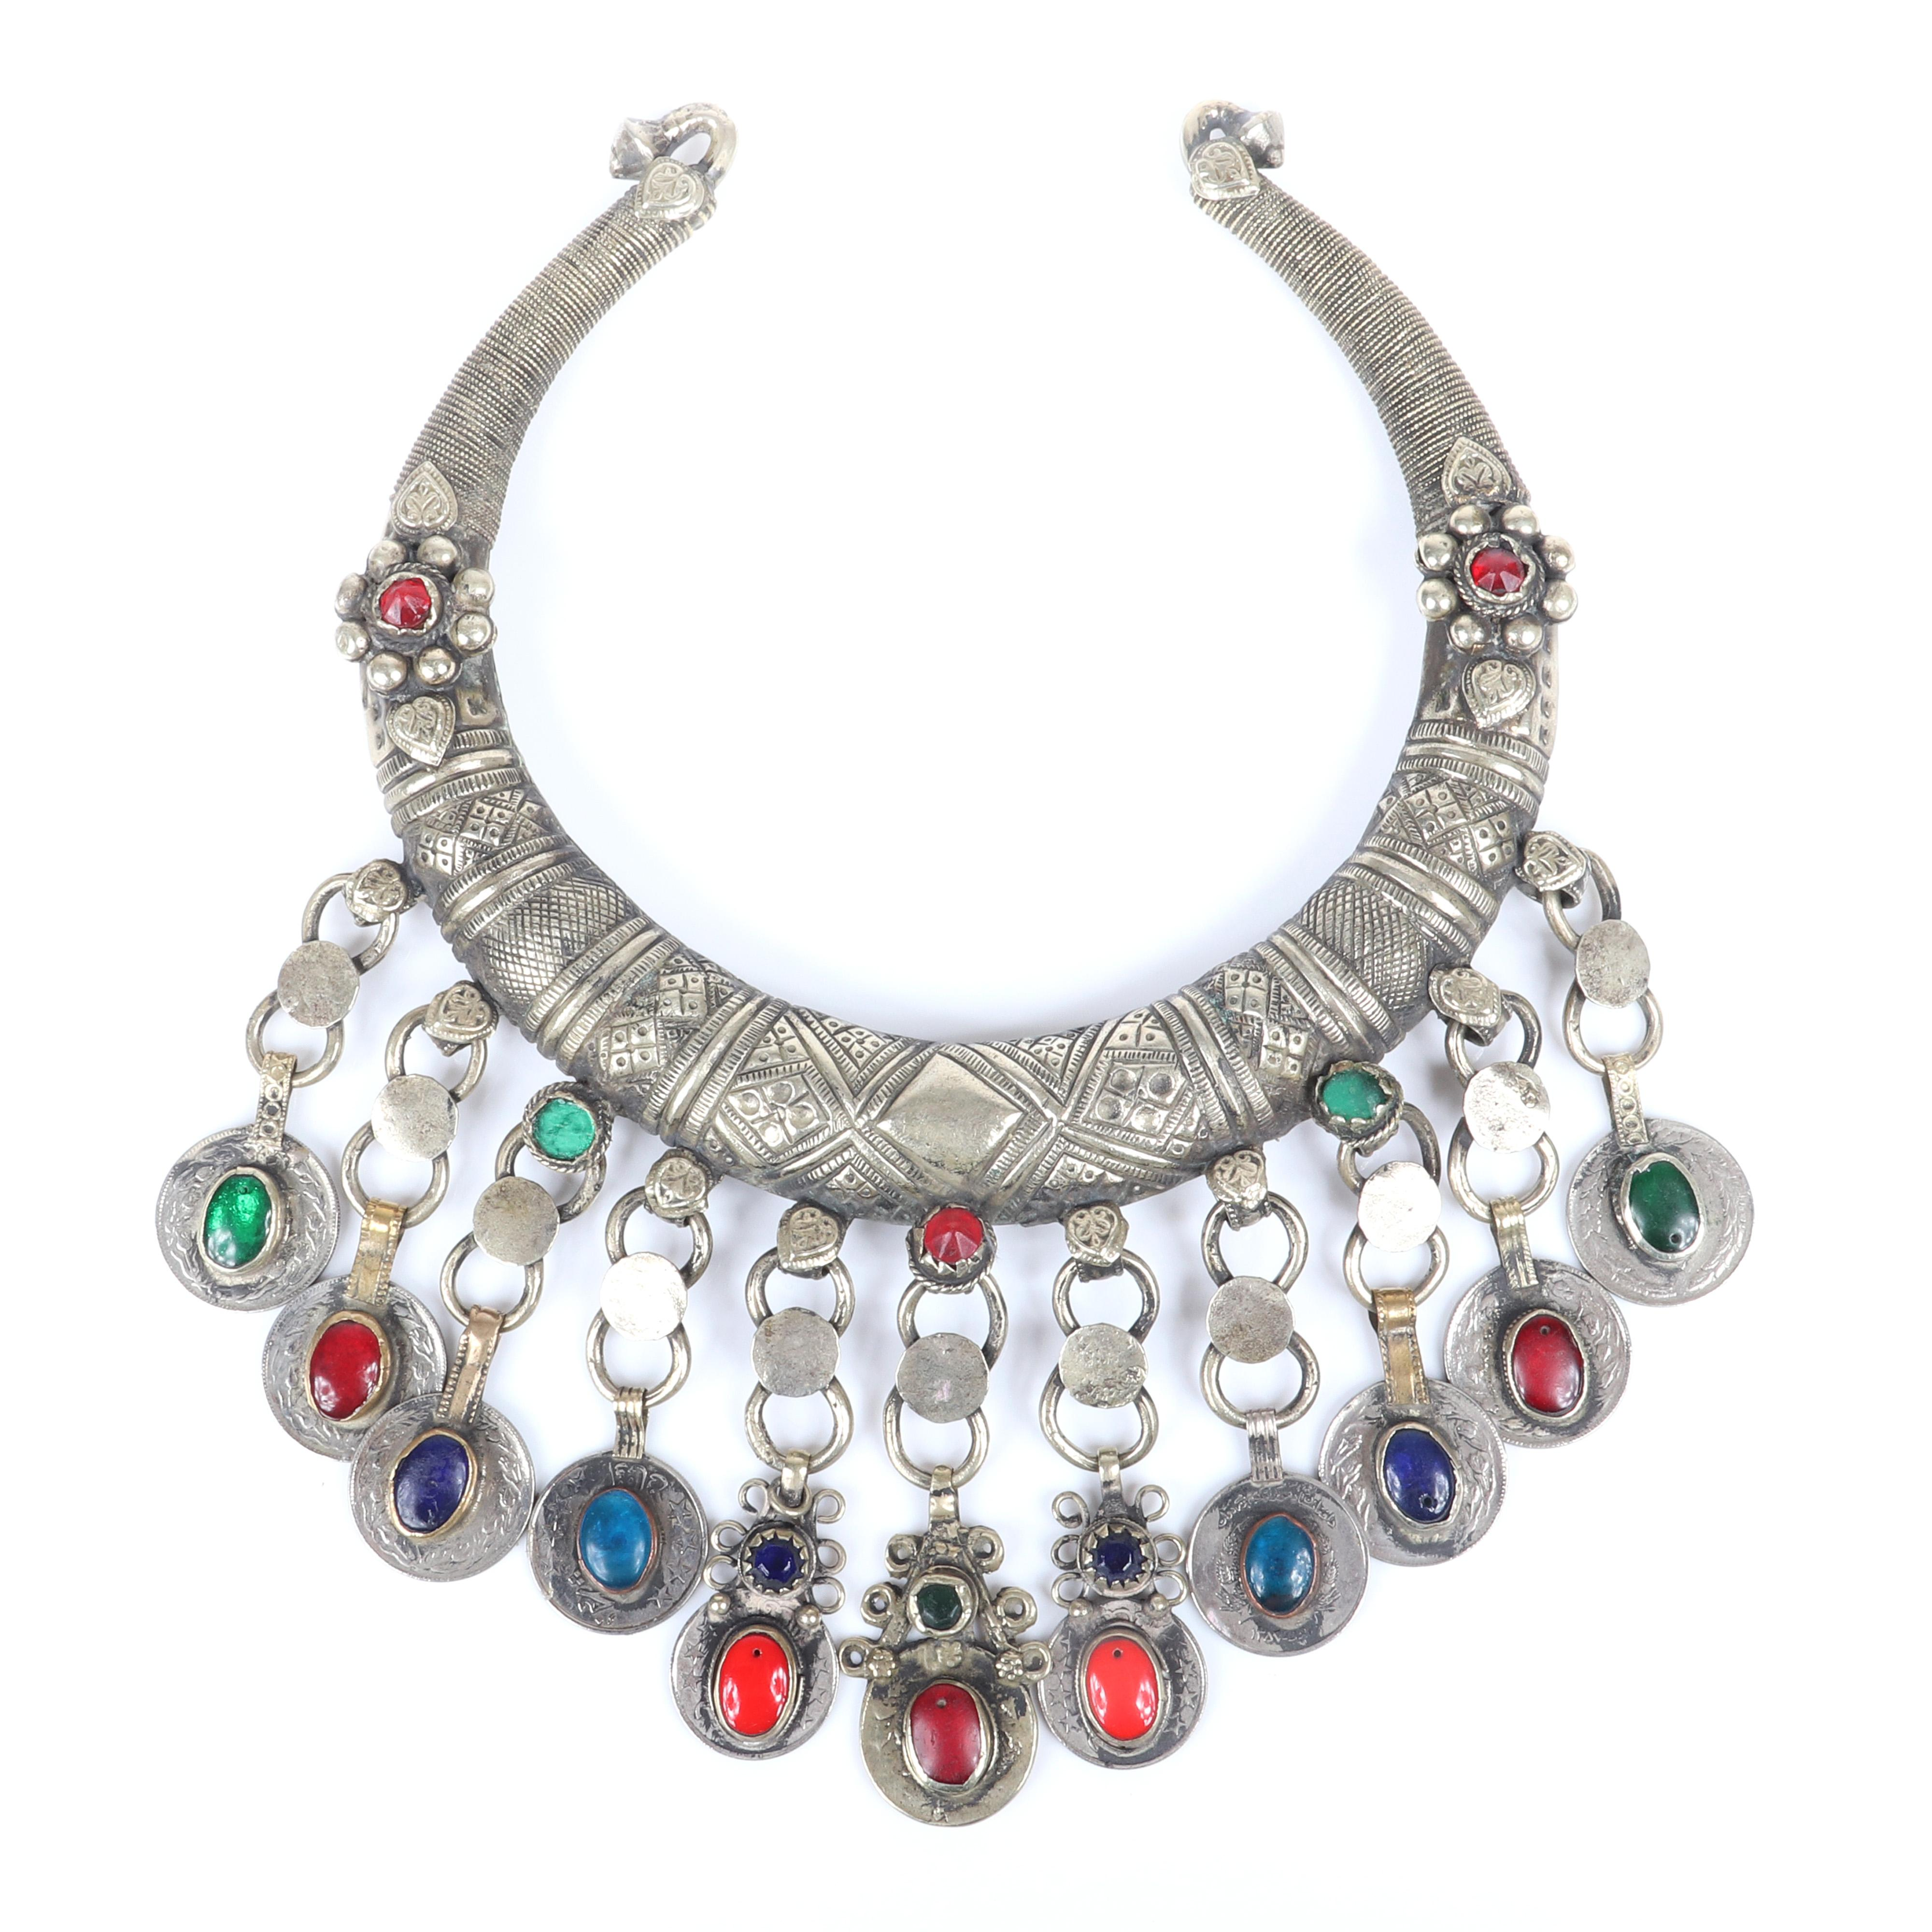 """Vintage old silver chunky Middle Eastern tribal torc collar necklace with dangling links with Rupee coins and glass jewel cabochons in red, blue and green with stamped motif. 7 1/4"""" diam., 3 1/2"""" drop"""